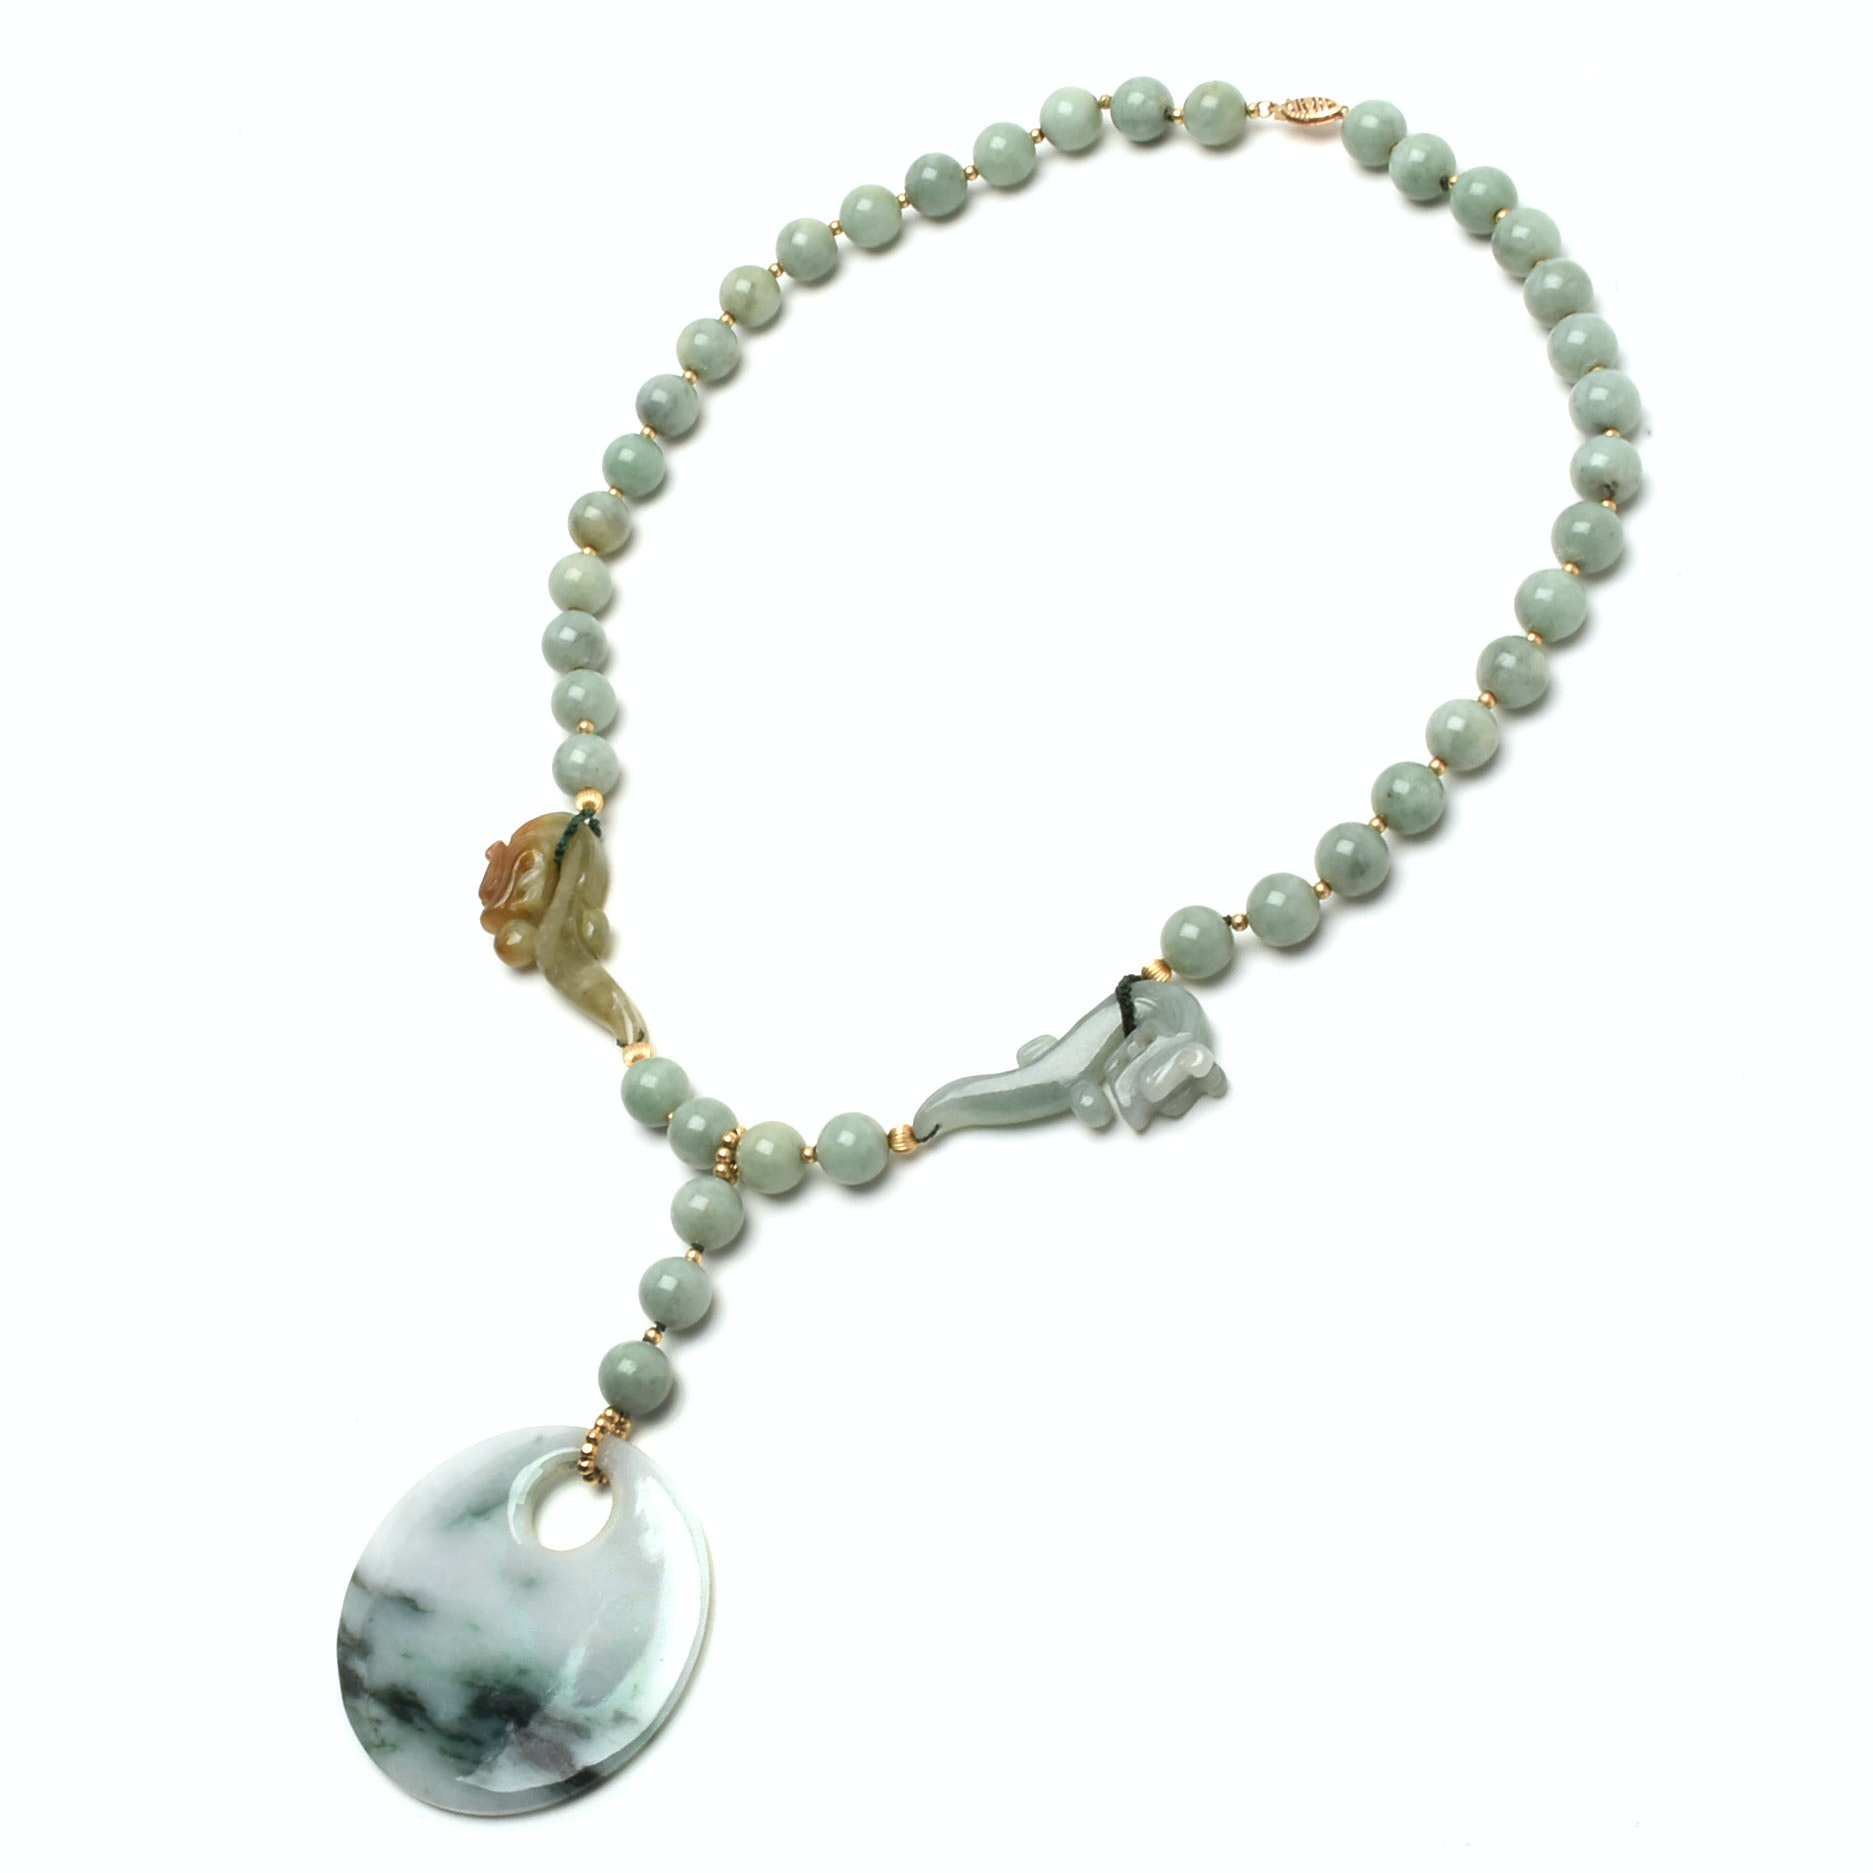 Chinese Carved Jadeite Beaded Necklace with 14K Yellow Gold Clasp